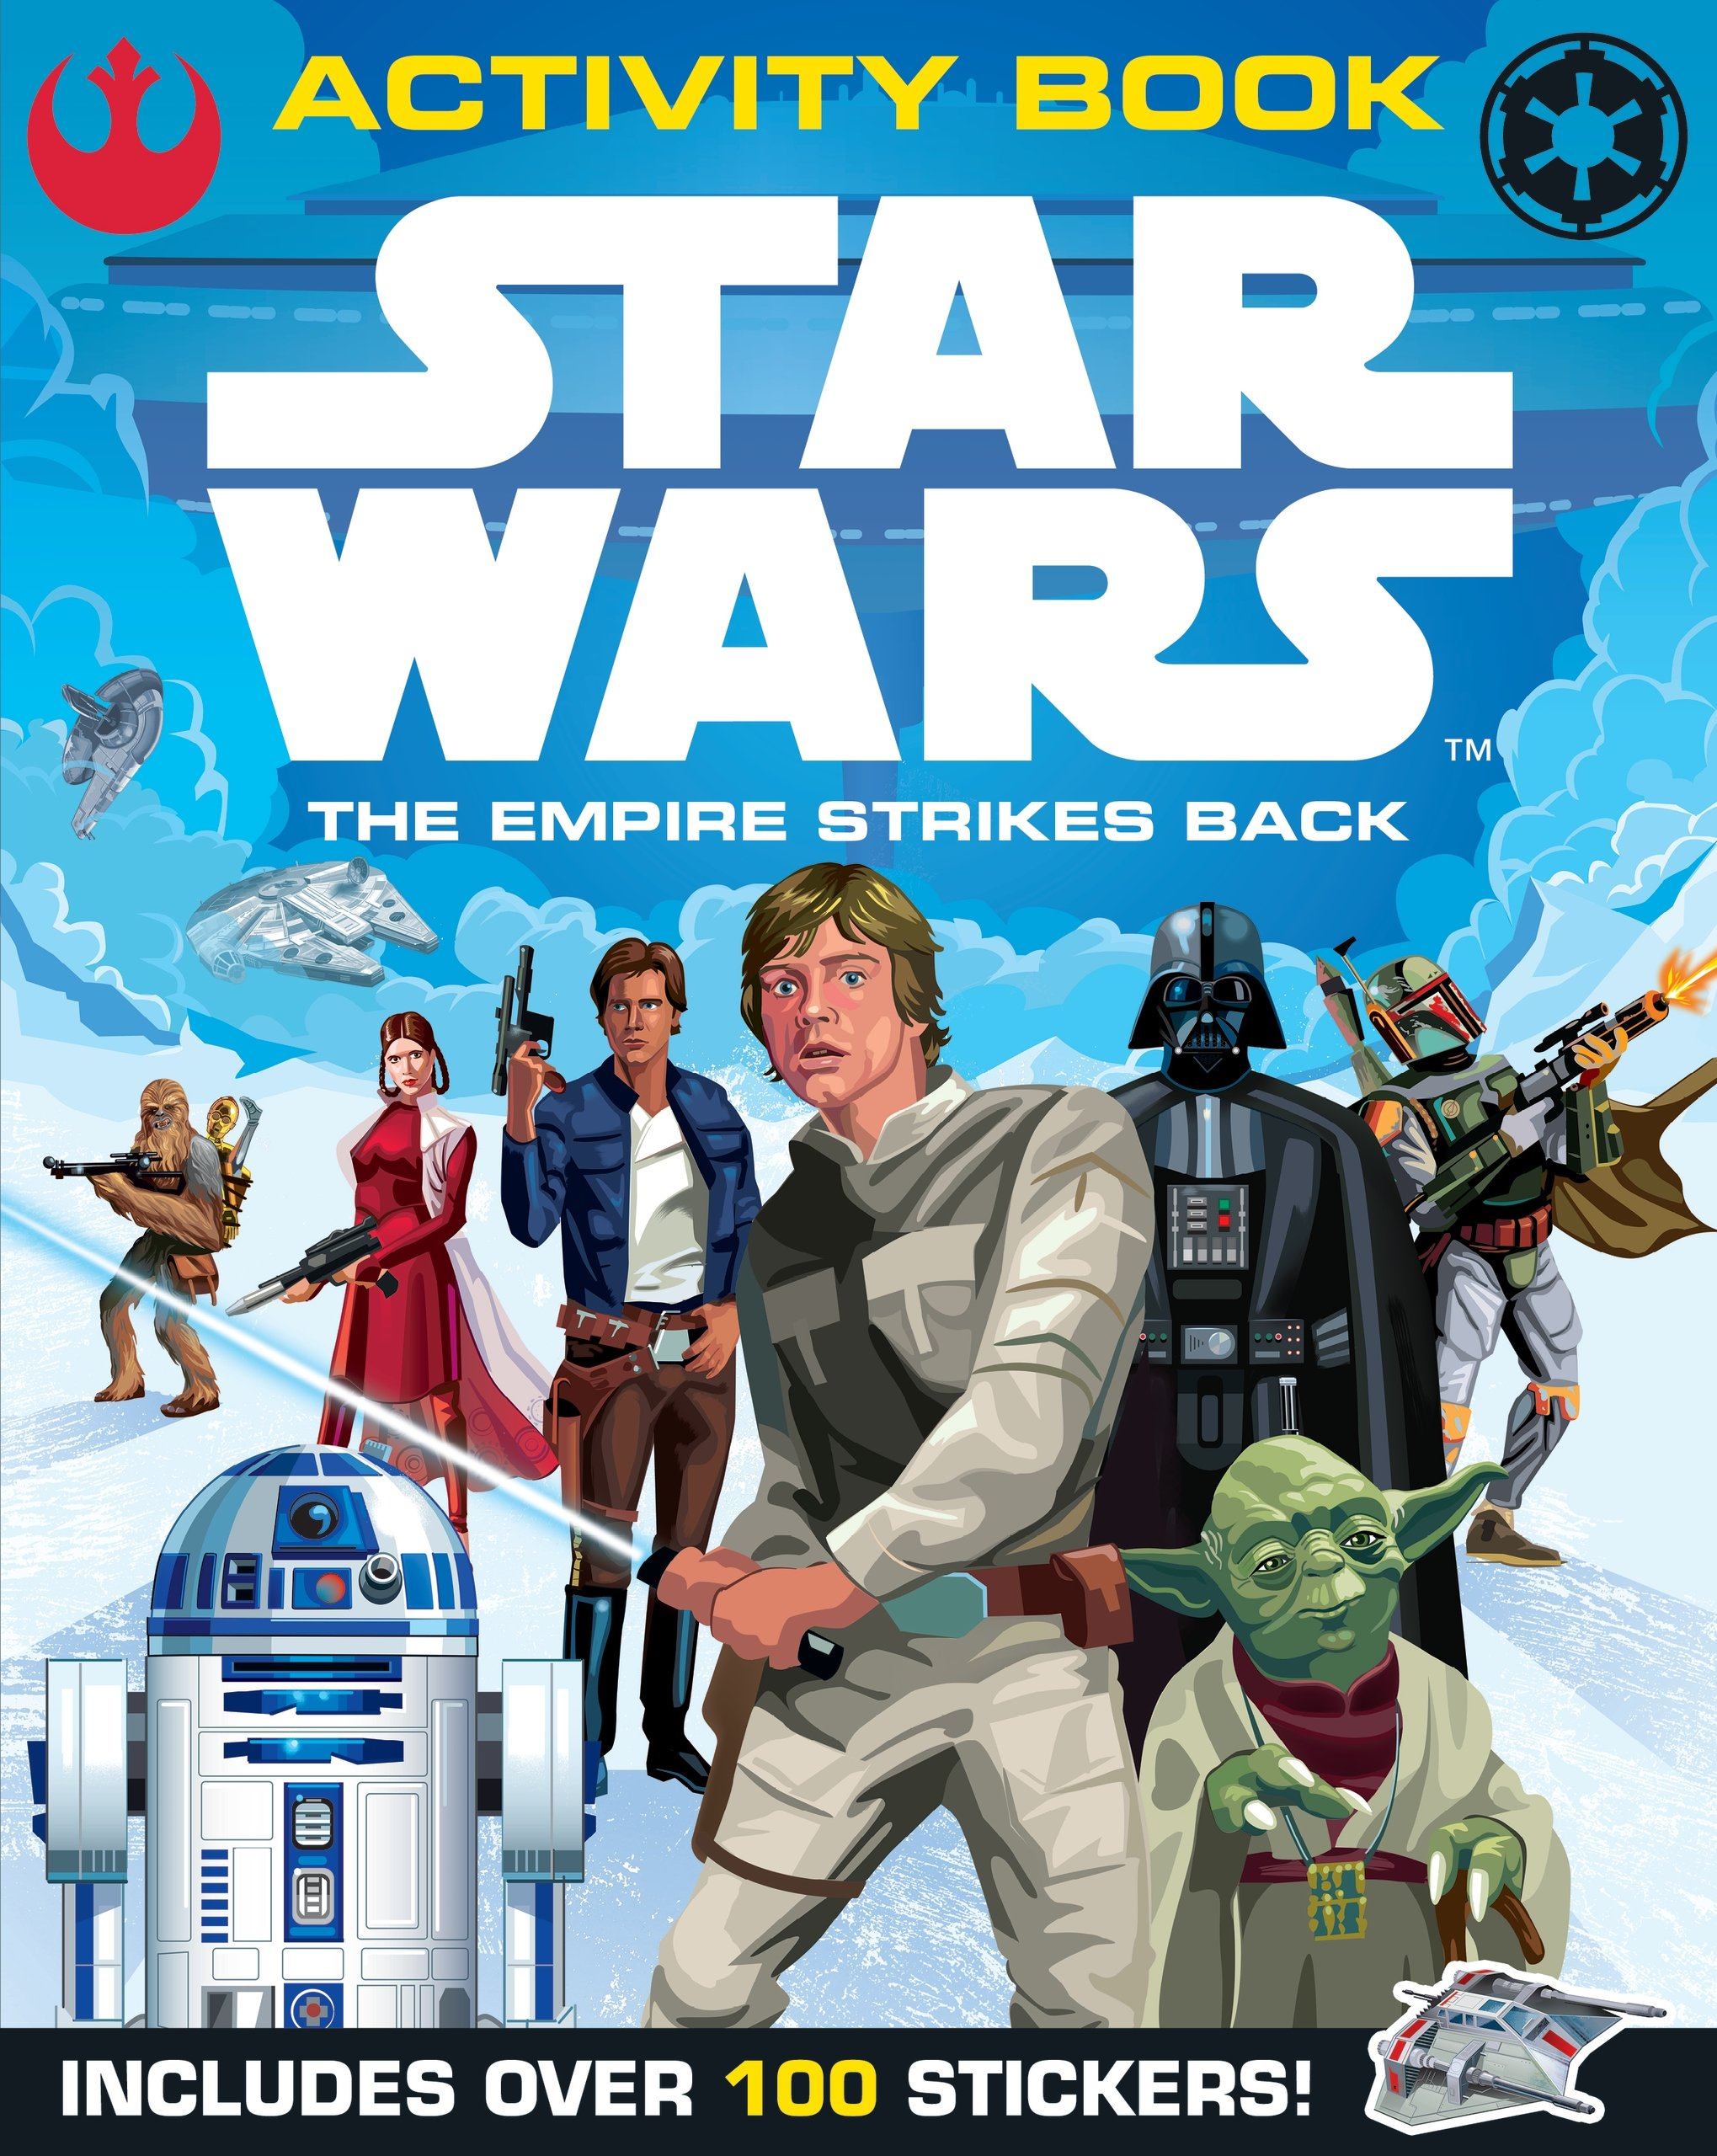 Star Wars: The Empire Strikes Back Activity Book